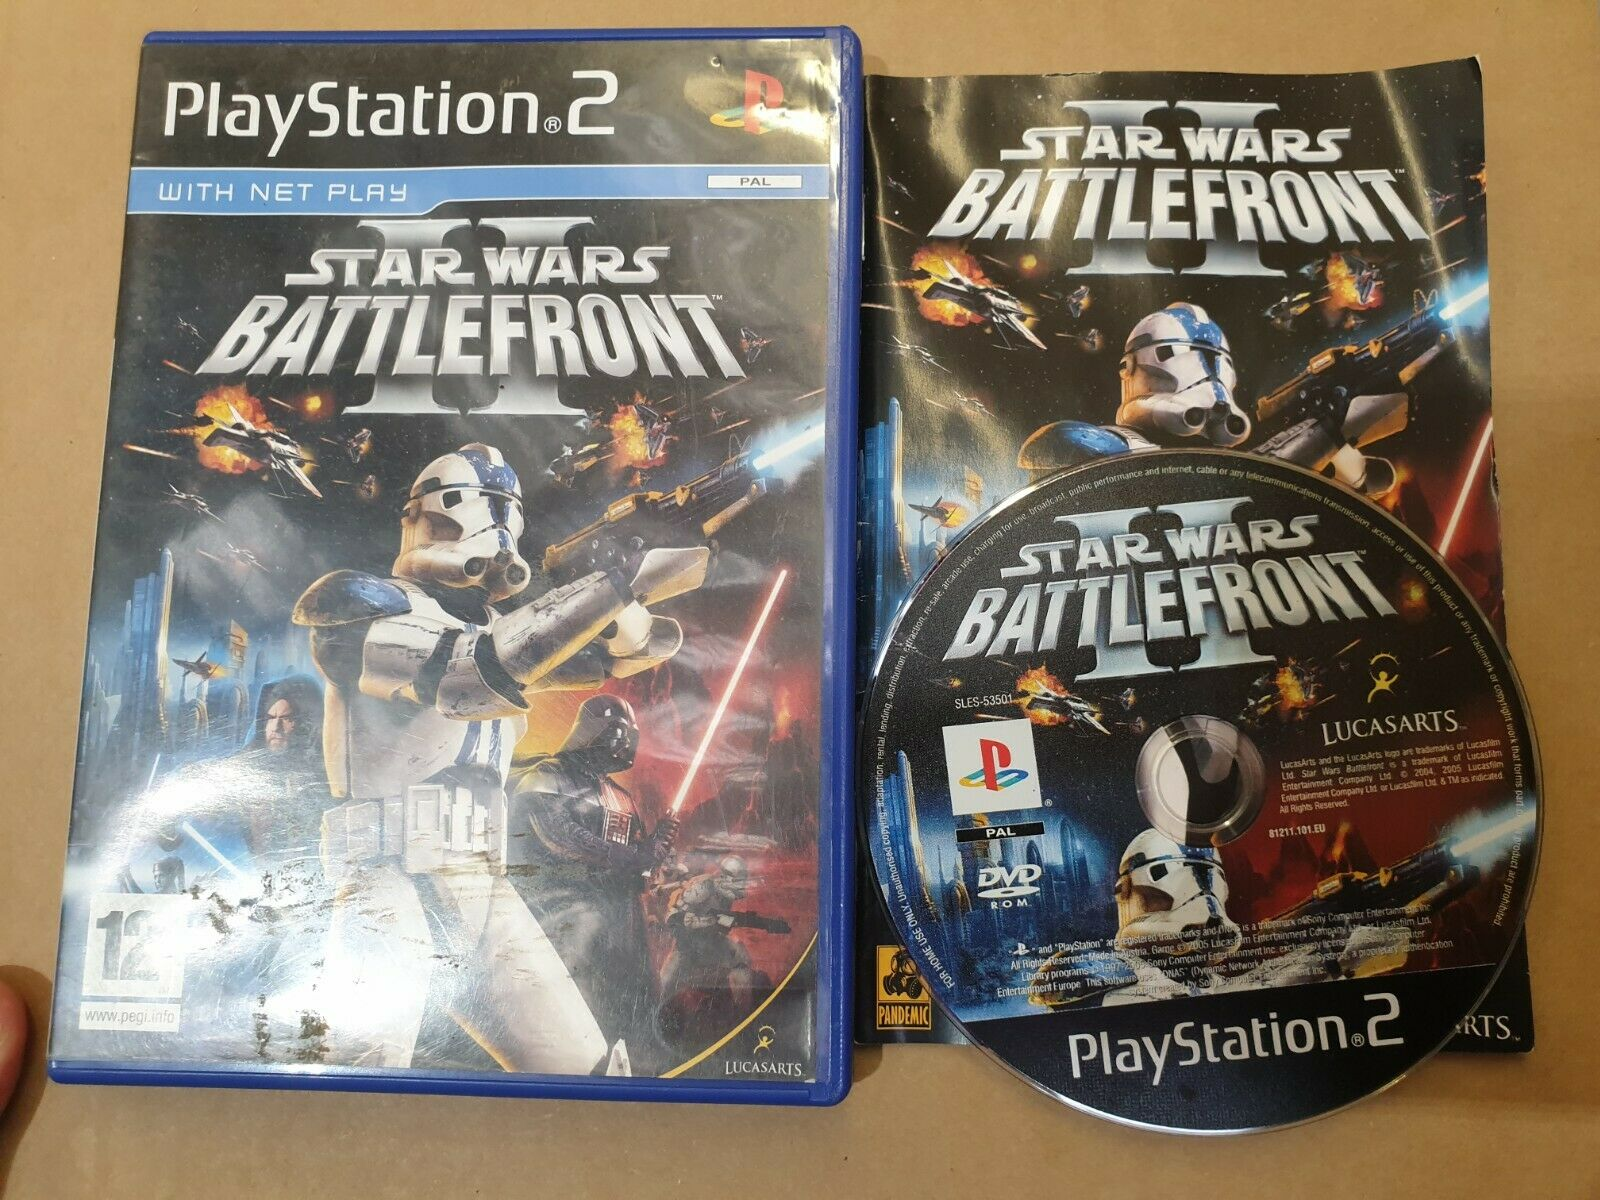 STAR WARS BATTLEFRONT 2 PS2 PLAYSTATION 2 - Avis StarWars